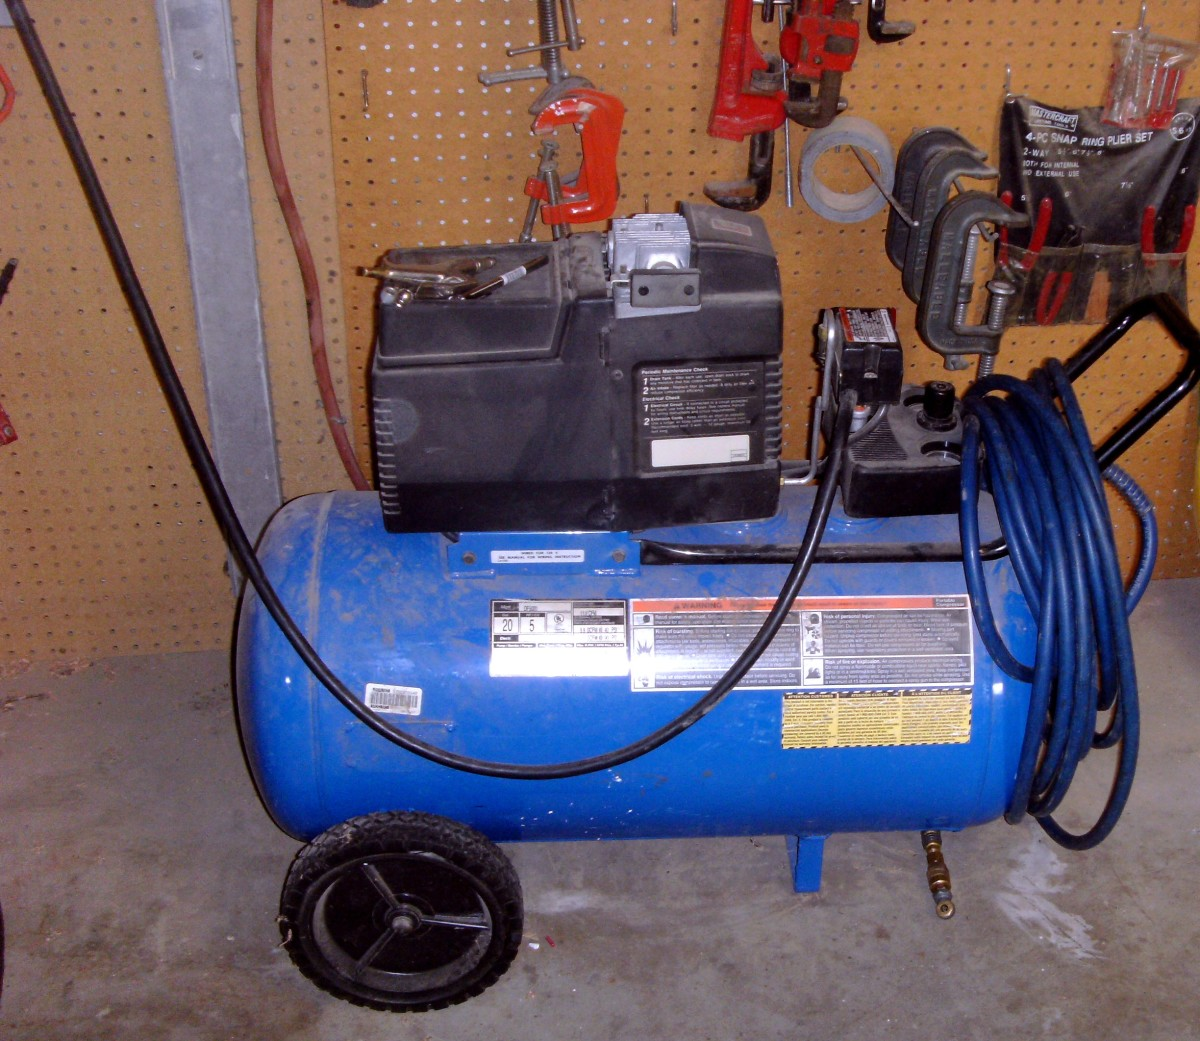 My own Devilbiss air compressor.  Note the small tray on the upper left for accessories.  This is a 5 HP, 20 gallon compressor producing 7 CFM at 90 PSI.